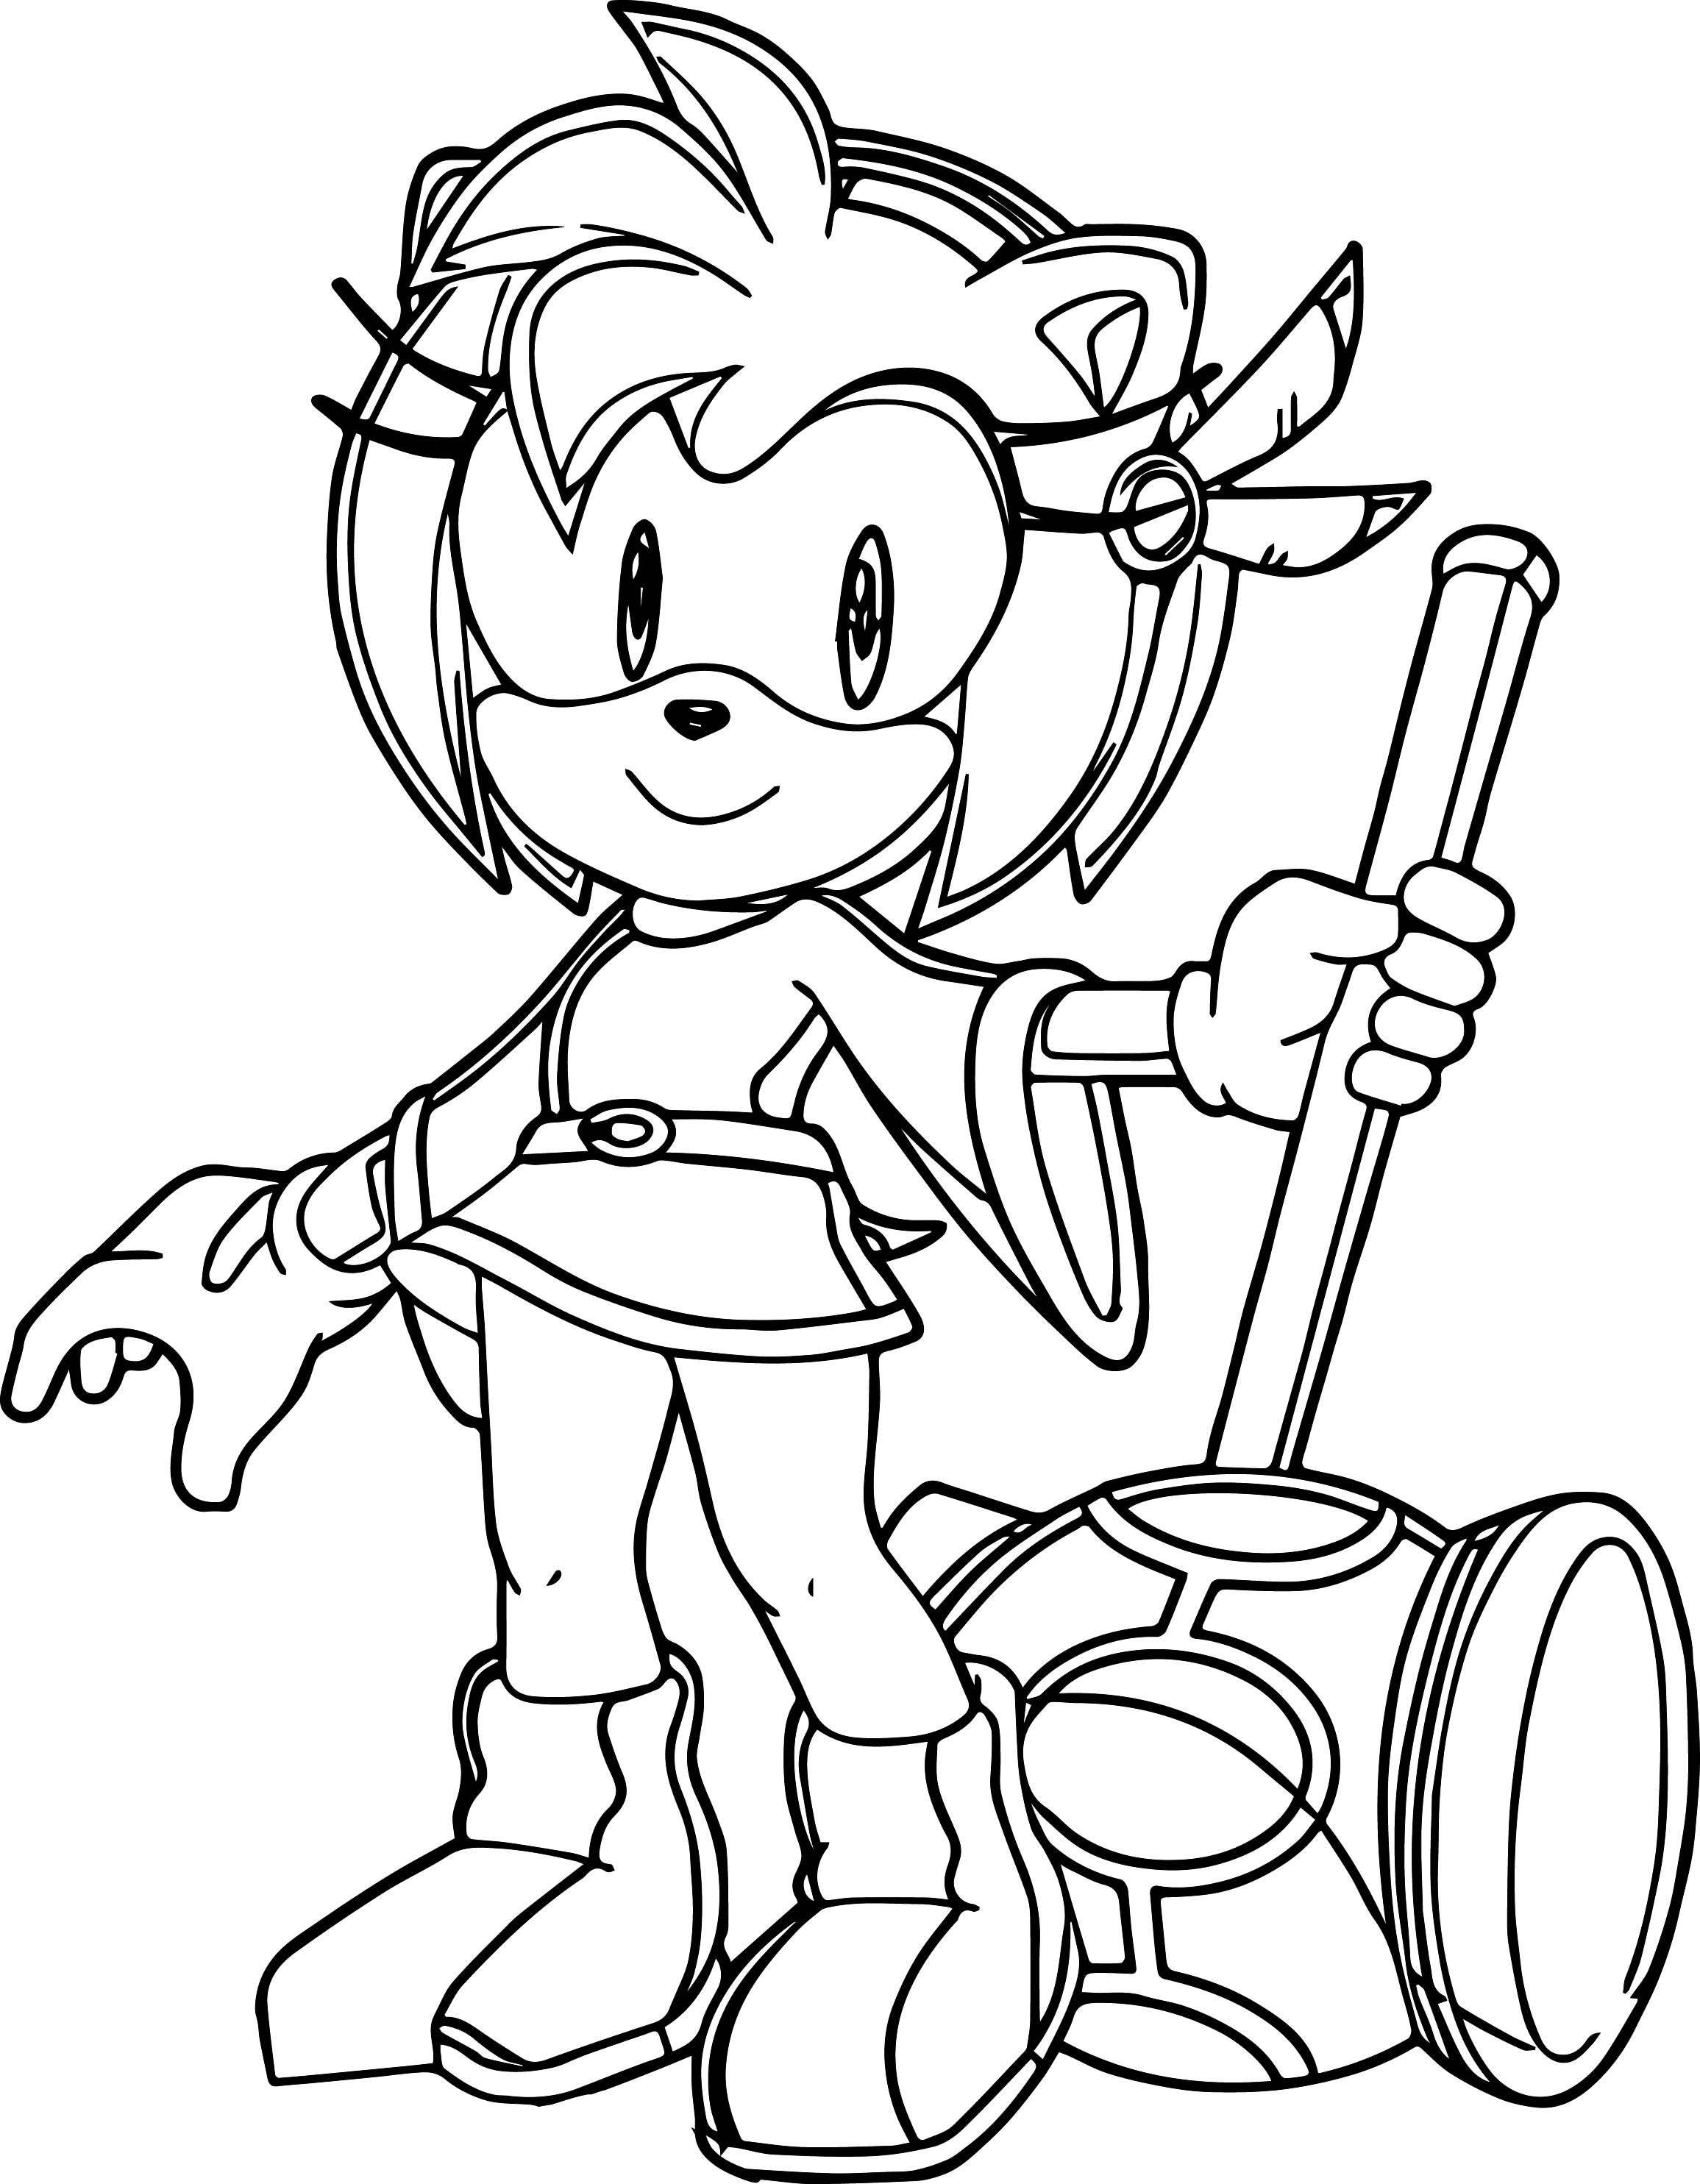 amy coloring pages - photo#35